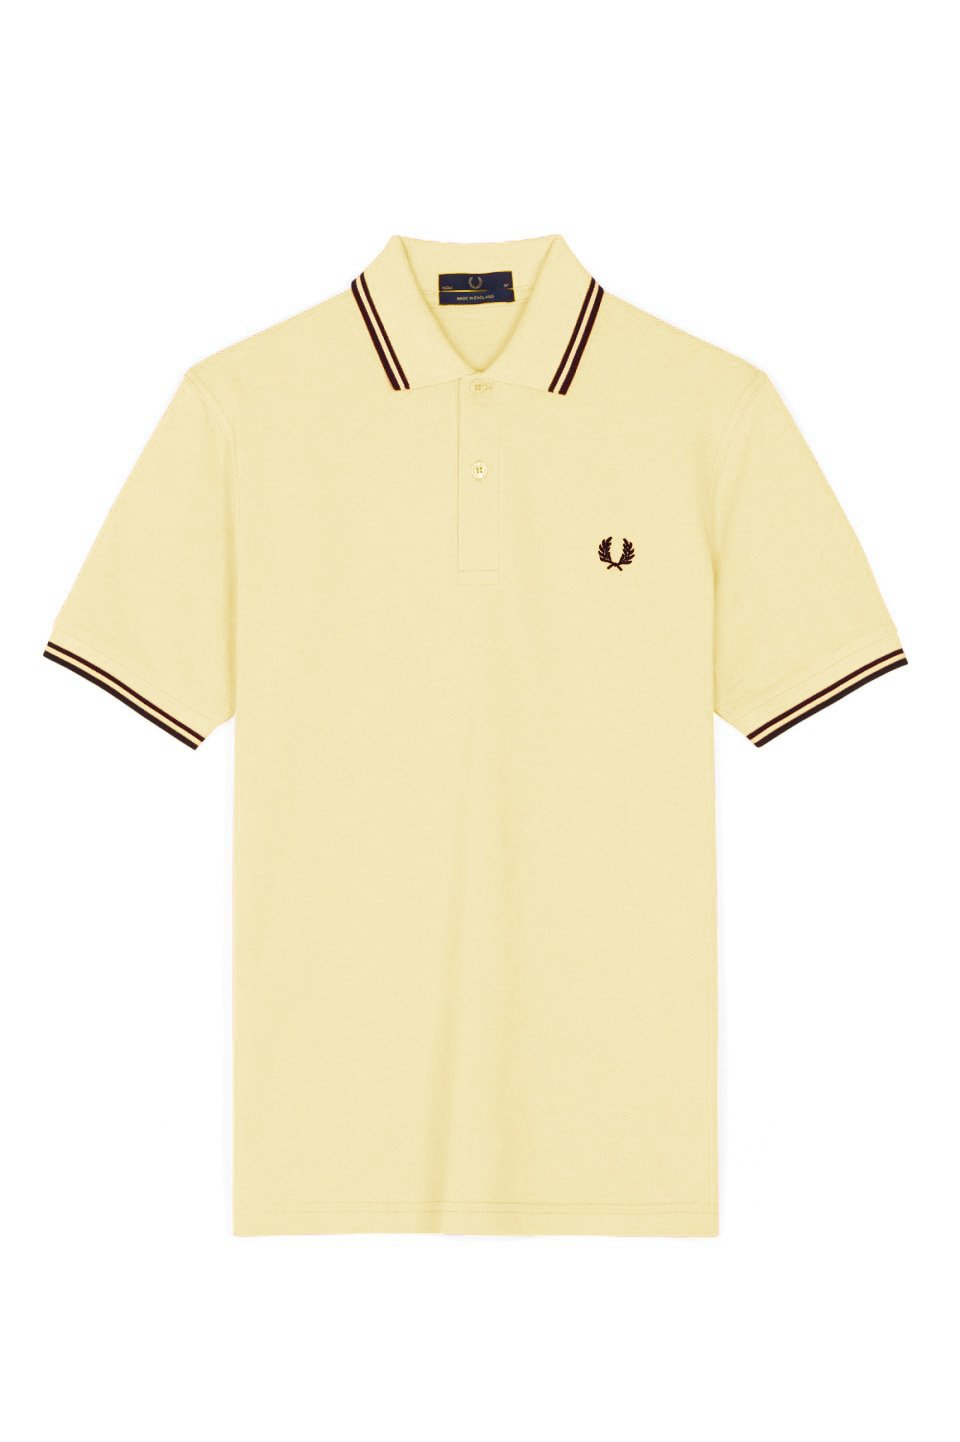 [フレッドペリー]ポロシャツ TWIN TIPPED FRED PERRY SHIRT M12N メンズ B07D1D2TB3 Medium|Lemon/Black/Black Lemon/Black/Black Medium